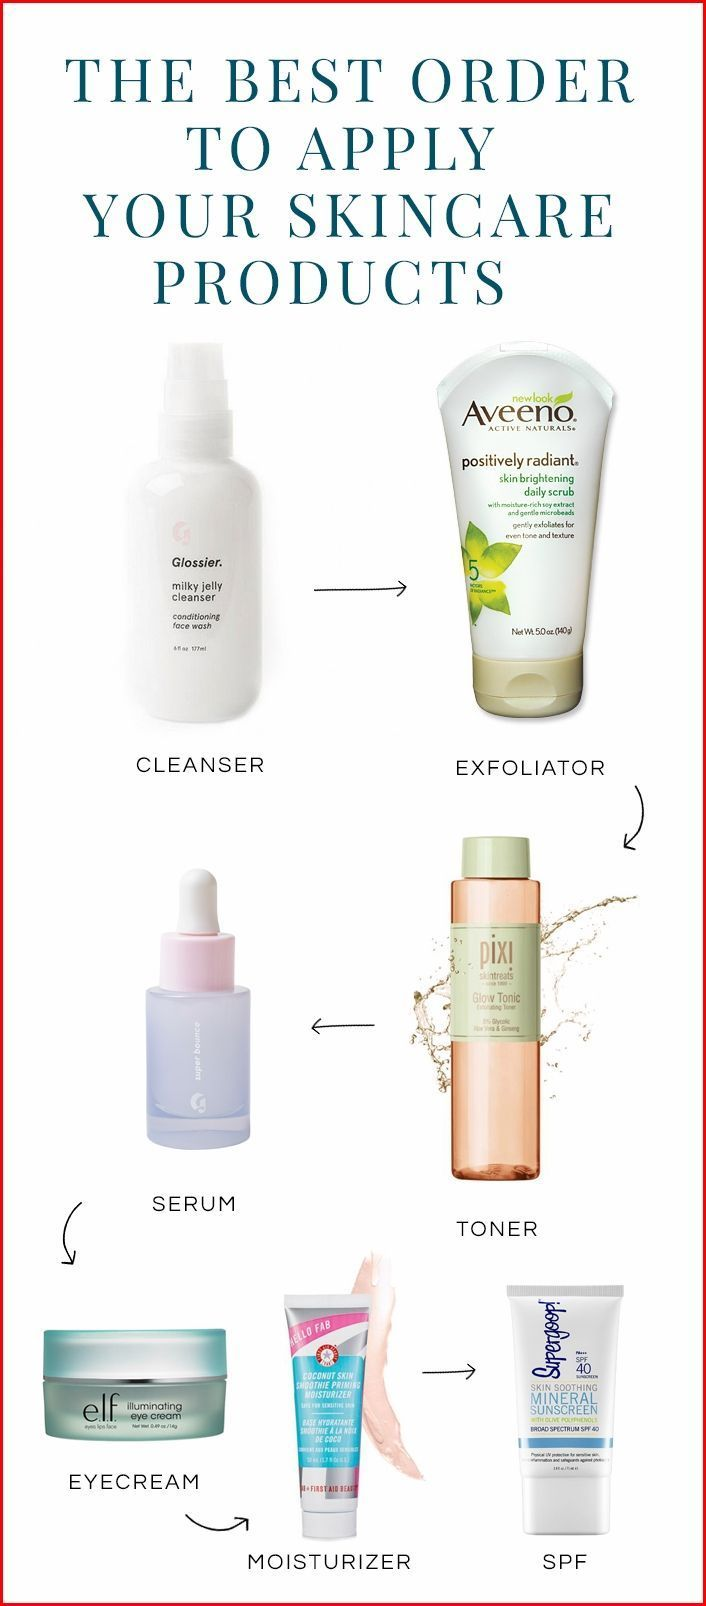 Skin Care Routine For Acne Are You Looking For The Simplest Tried And True Skin Care Secrets A Hautpflegeprodukte Hautpflege Heilmittel Naturliche Hautpflege